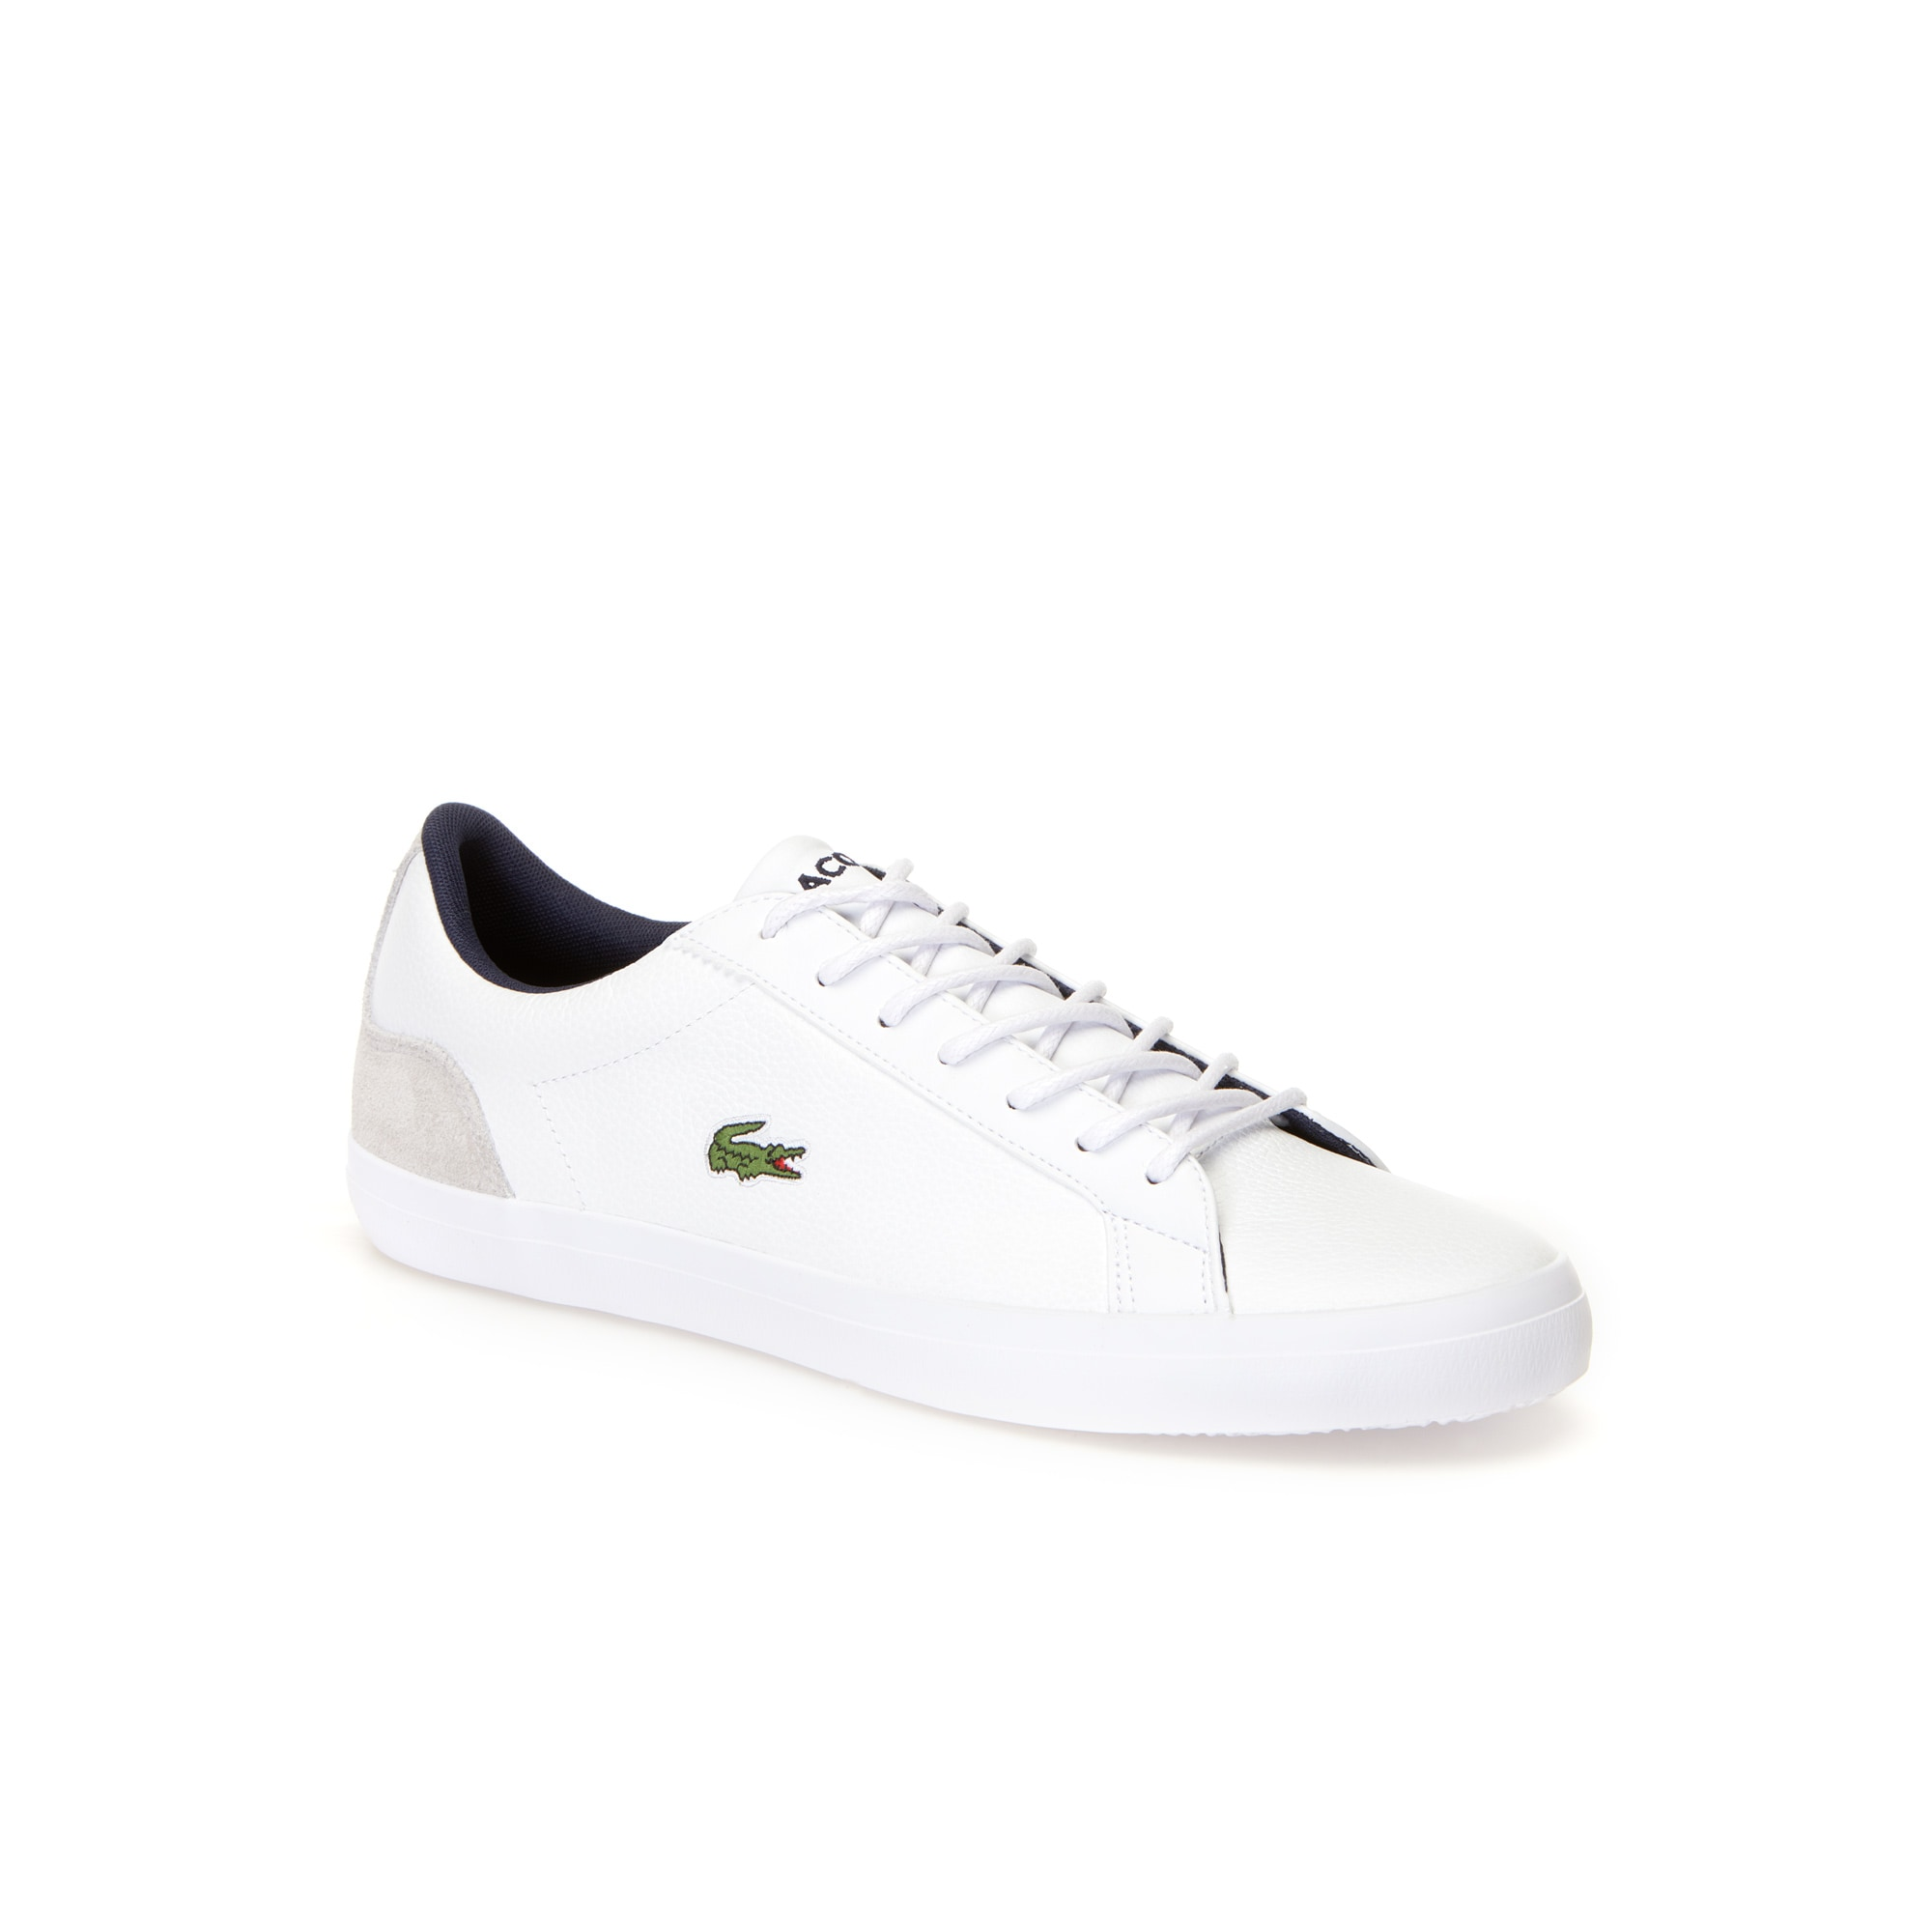 2170369c8 Men's Lerond Leather and Suede Trainers ...